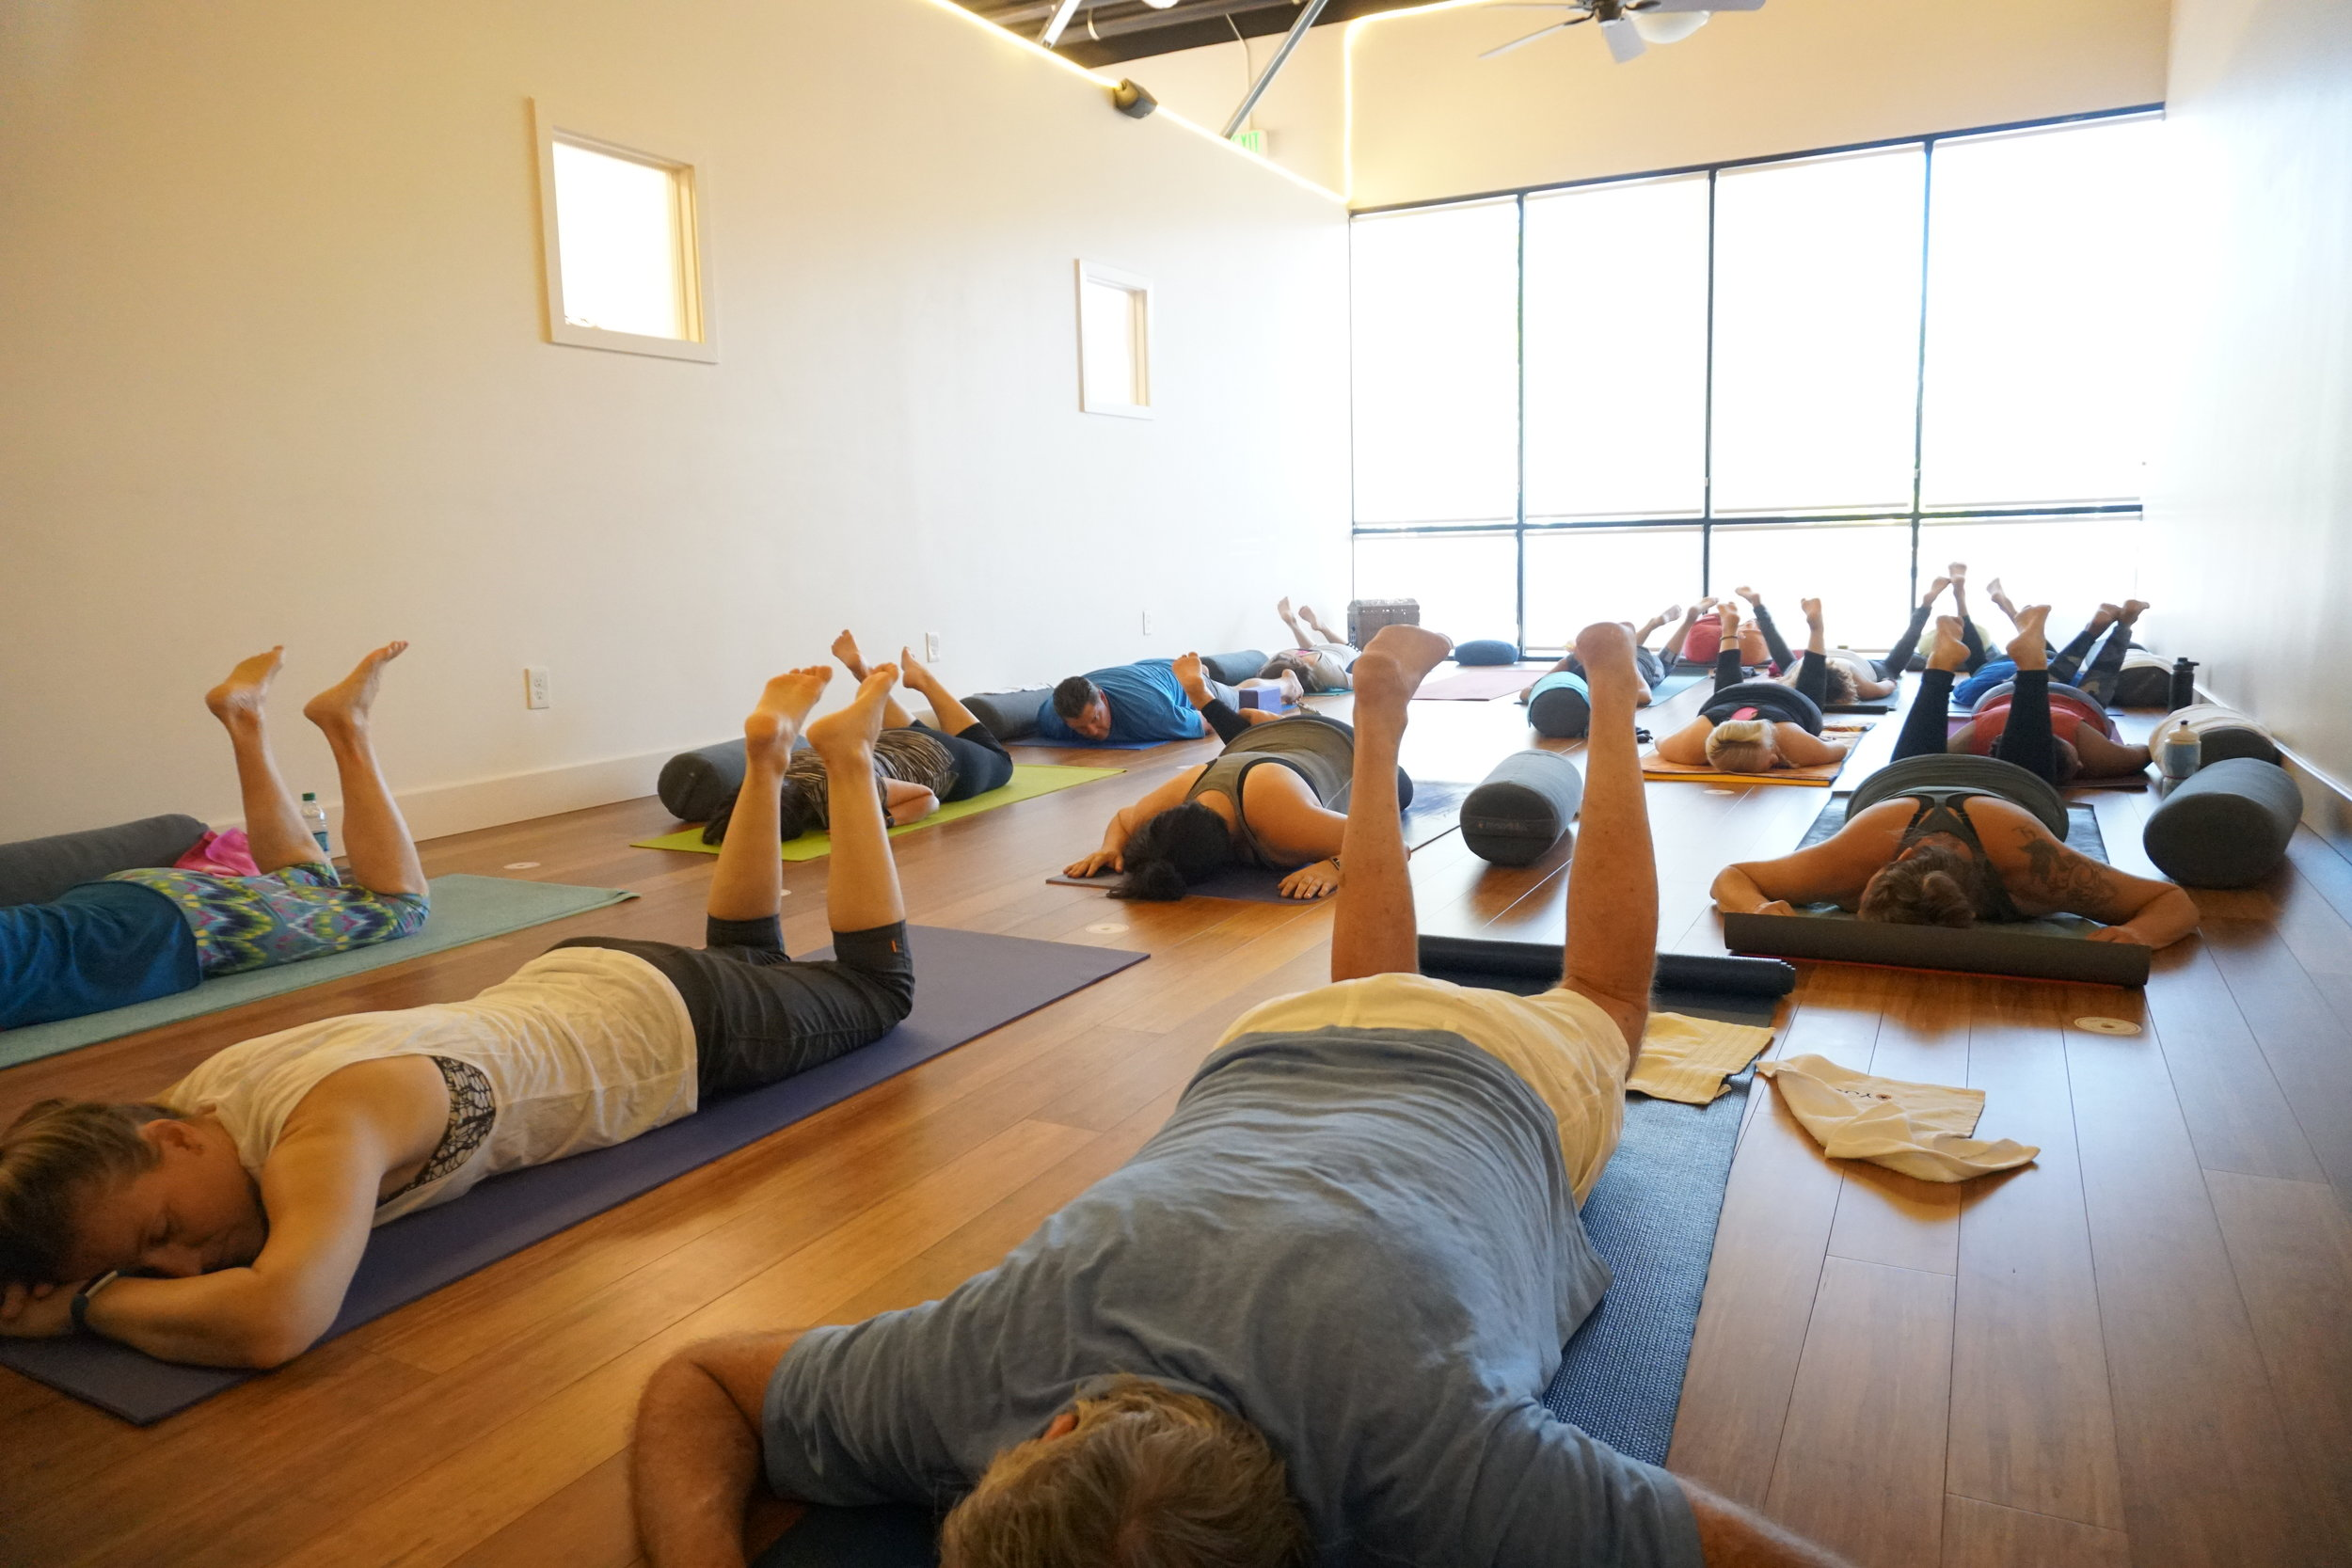 "Be a Part of Our Community - ""Best yoga studio! What a gem right here in Lincoln. I am an avid runner - and do Yin yoga 1-2 days a week to really stretch out. Renee is so wonderful and knowledgeable, and the general atmosphere is very relaxed and inviting."" - Brittany R."